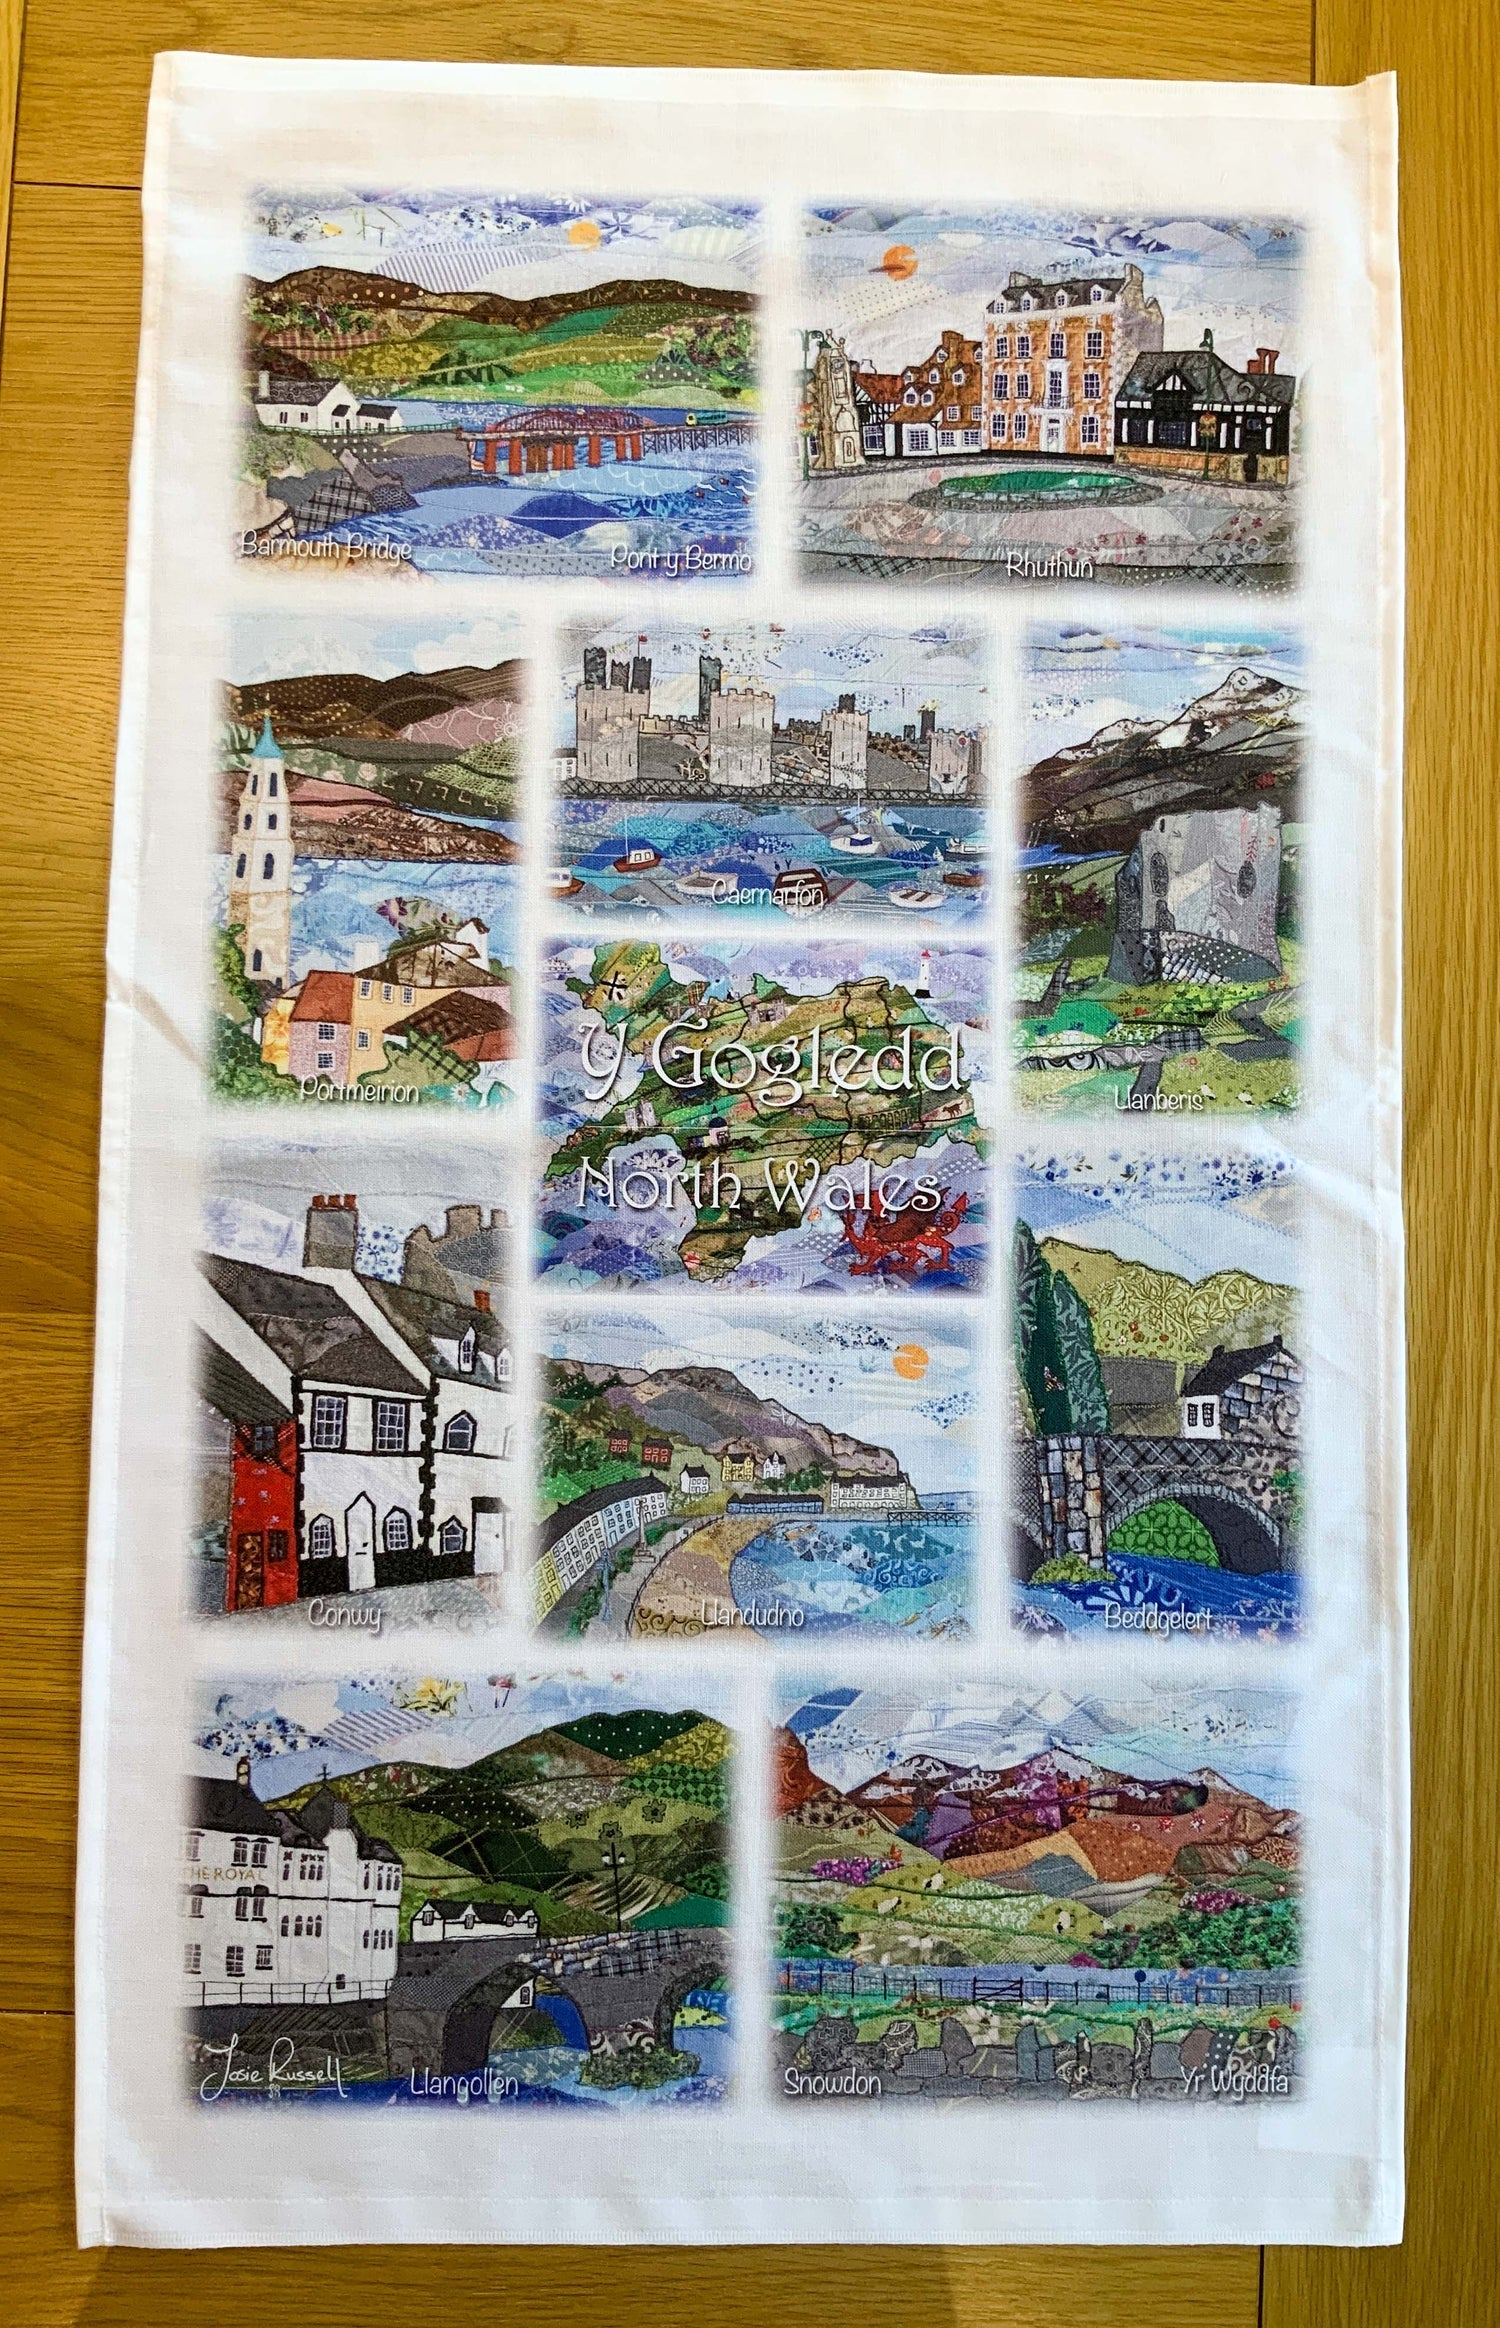 North Wales tea towel artwork by Josie Russel